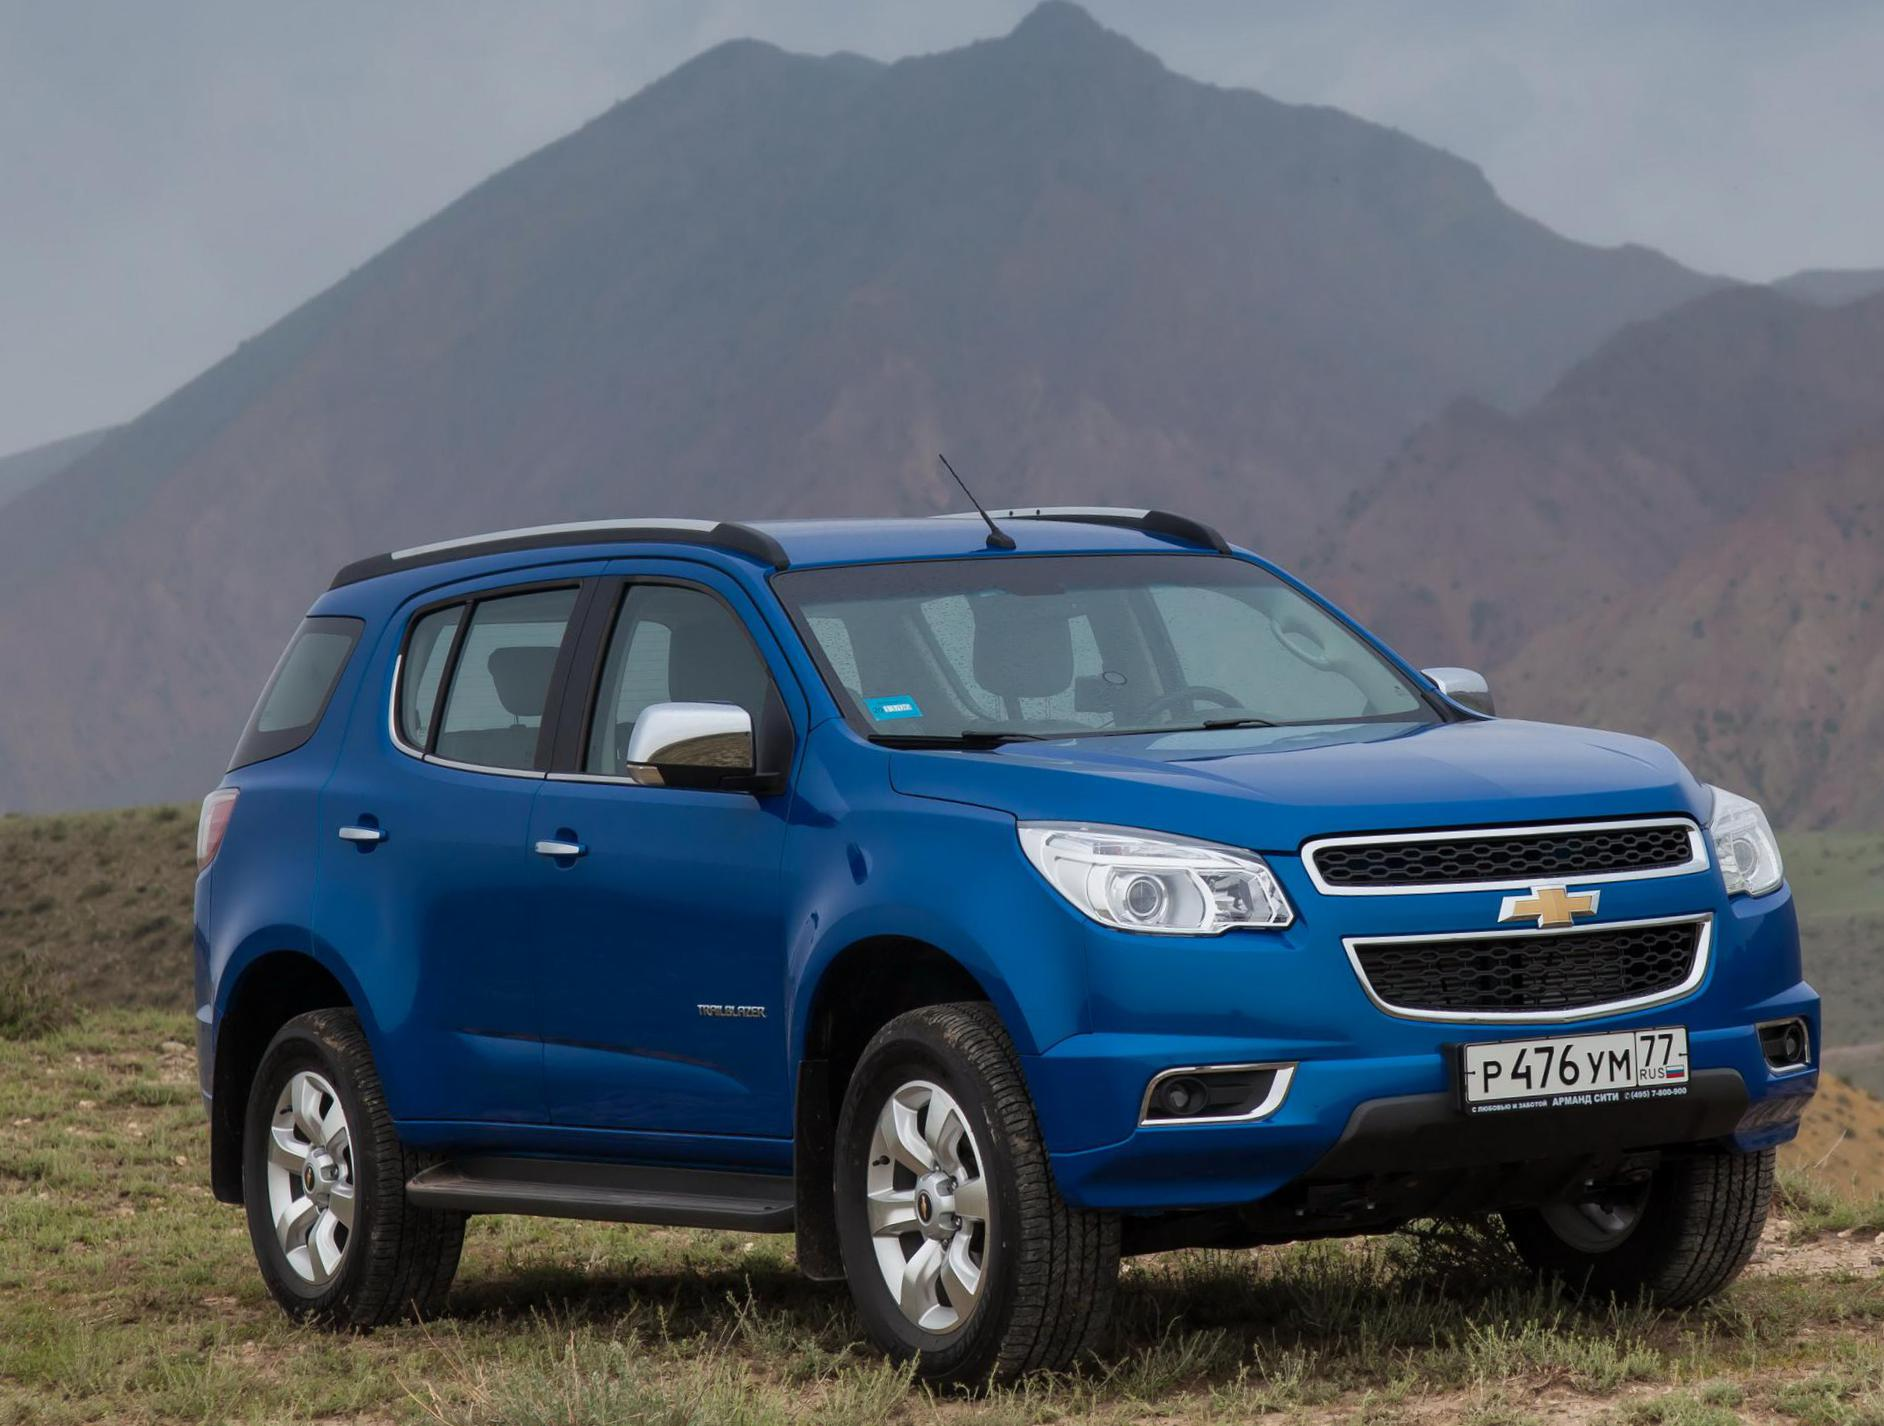 Chevrolet Trailblazer model sedan